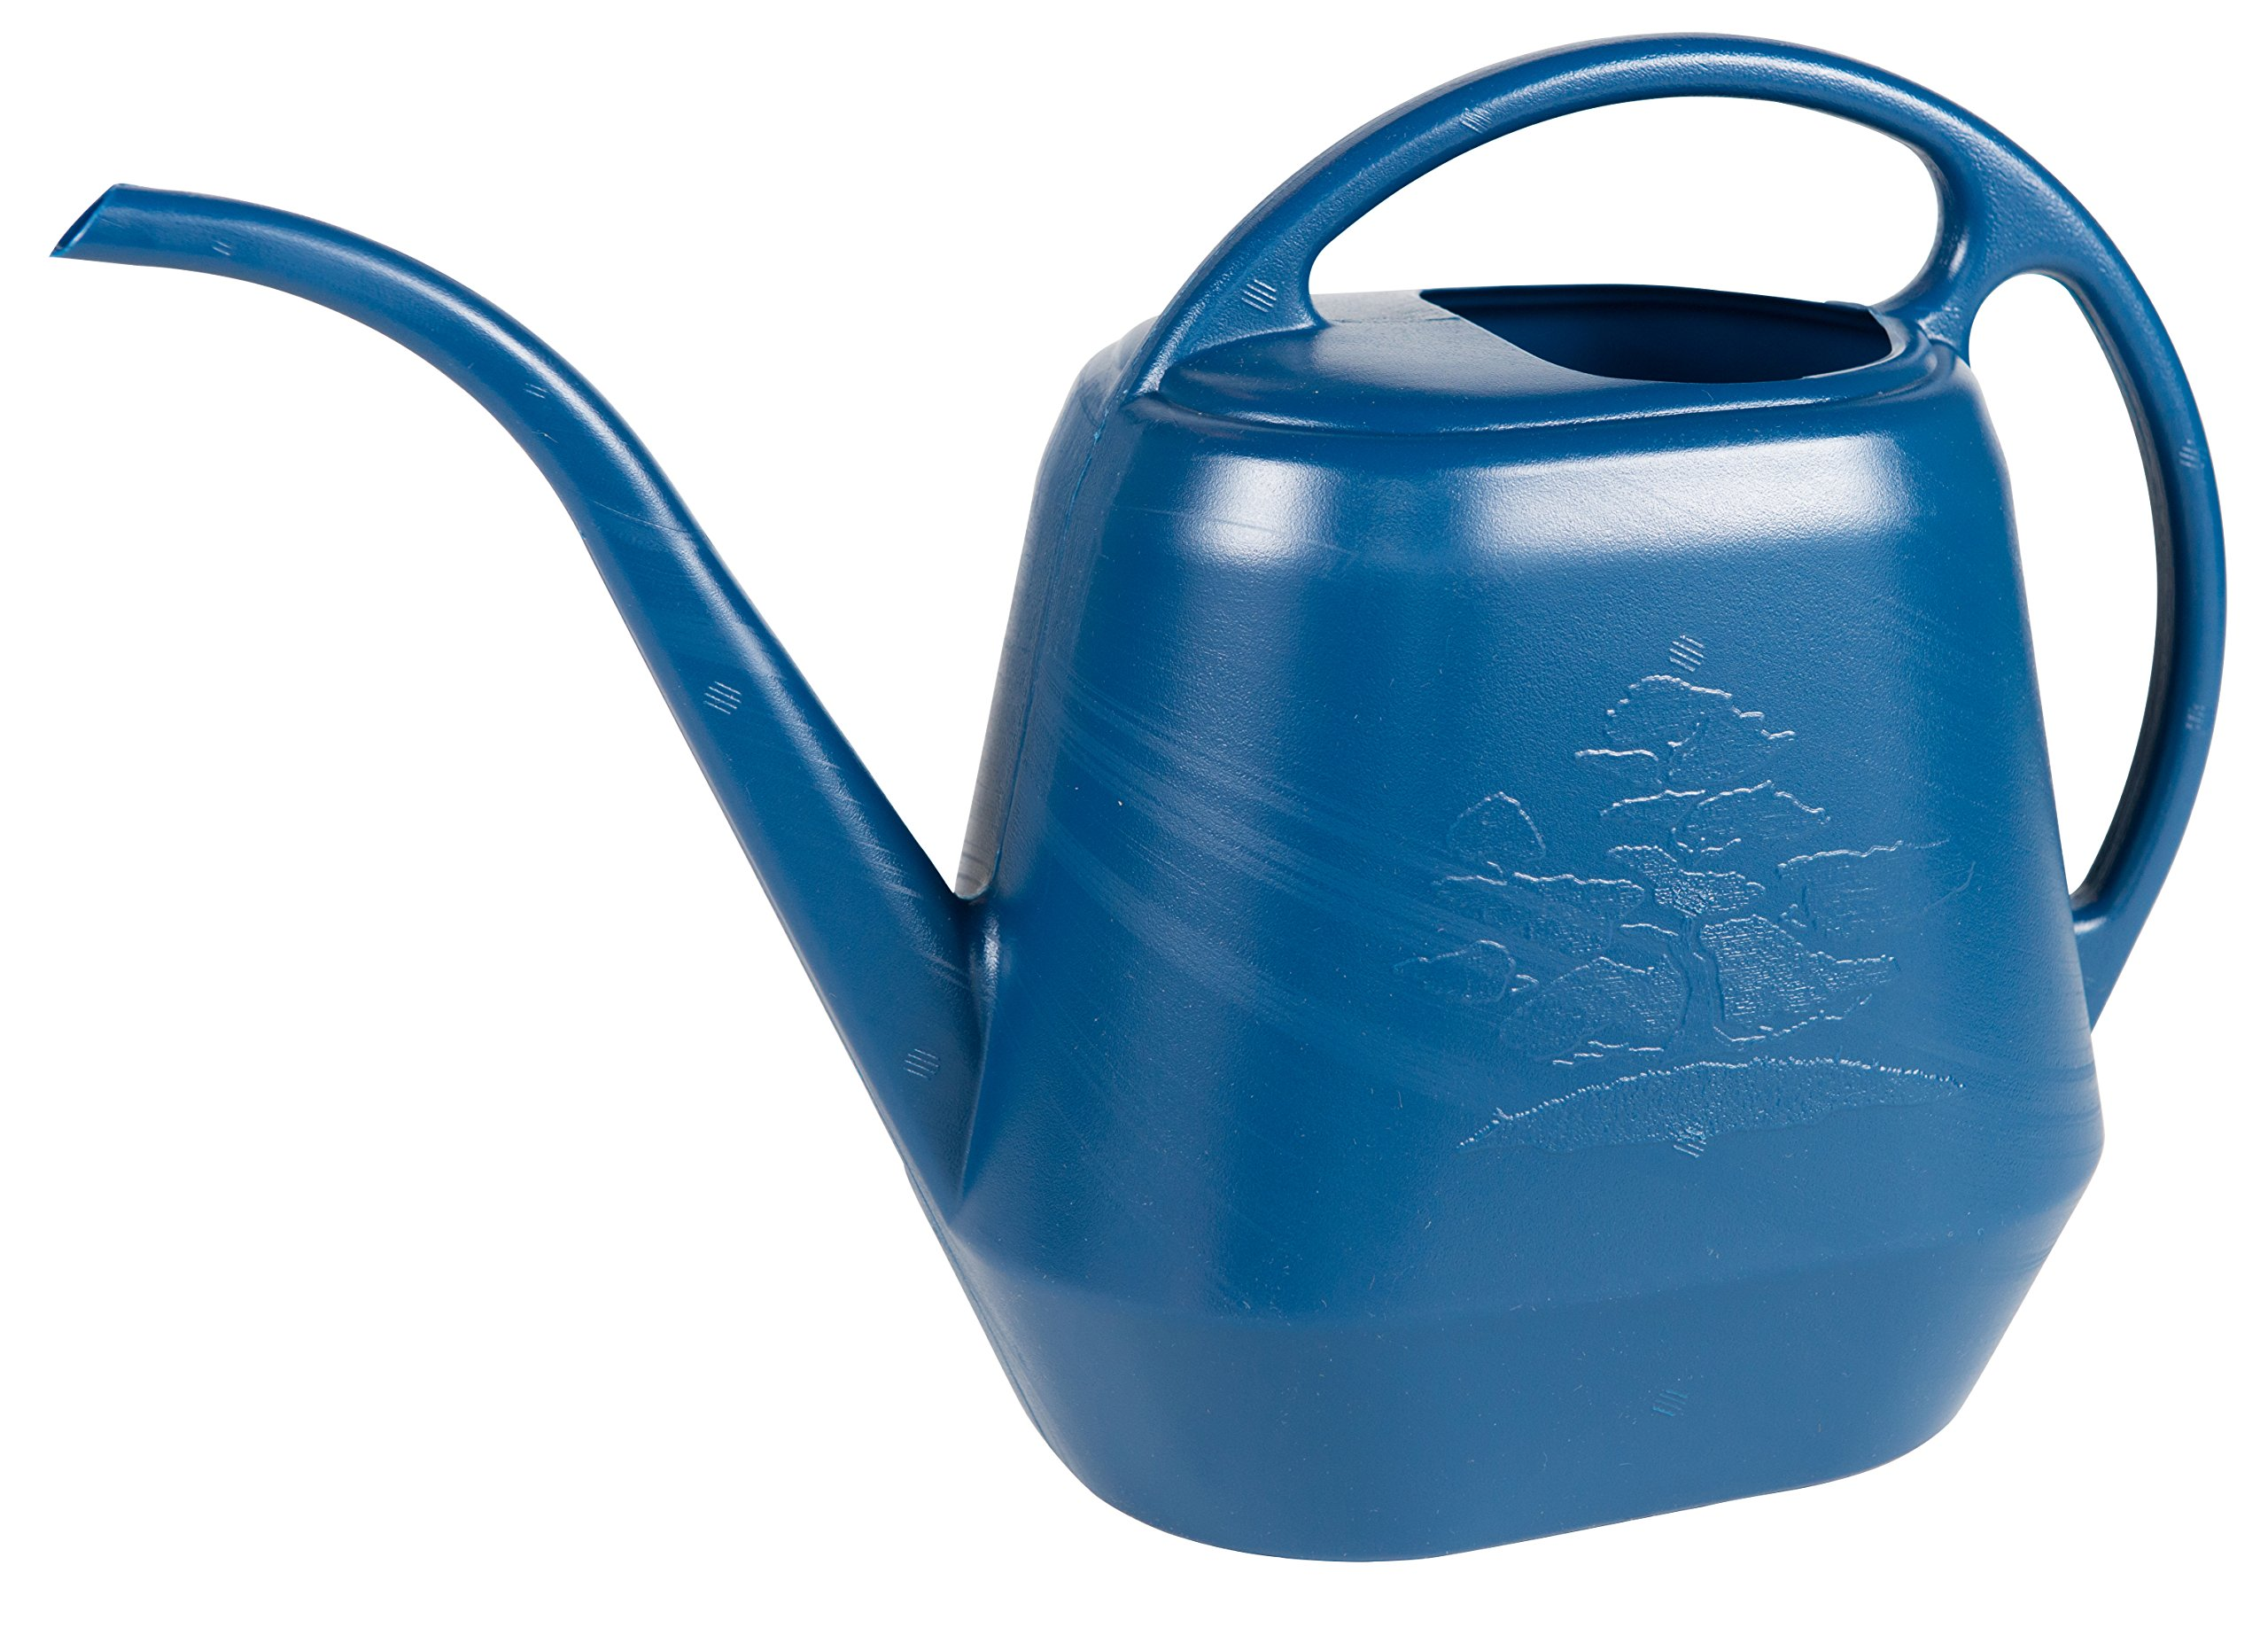 Bloem Aqua Rite Watering Can, 56 oz, Deep Sea (AW21-31) by Bloem (Image #1)